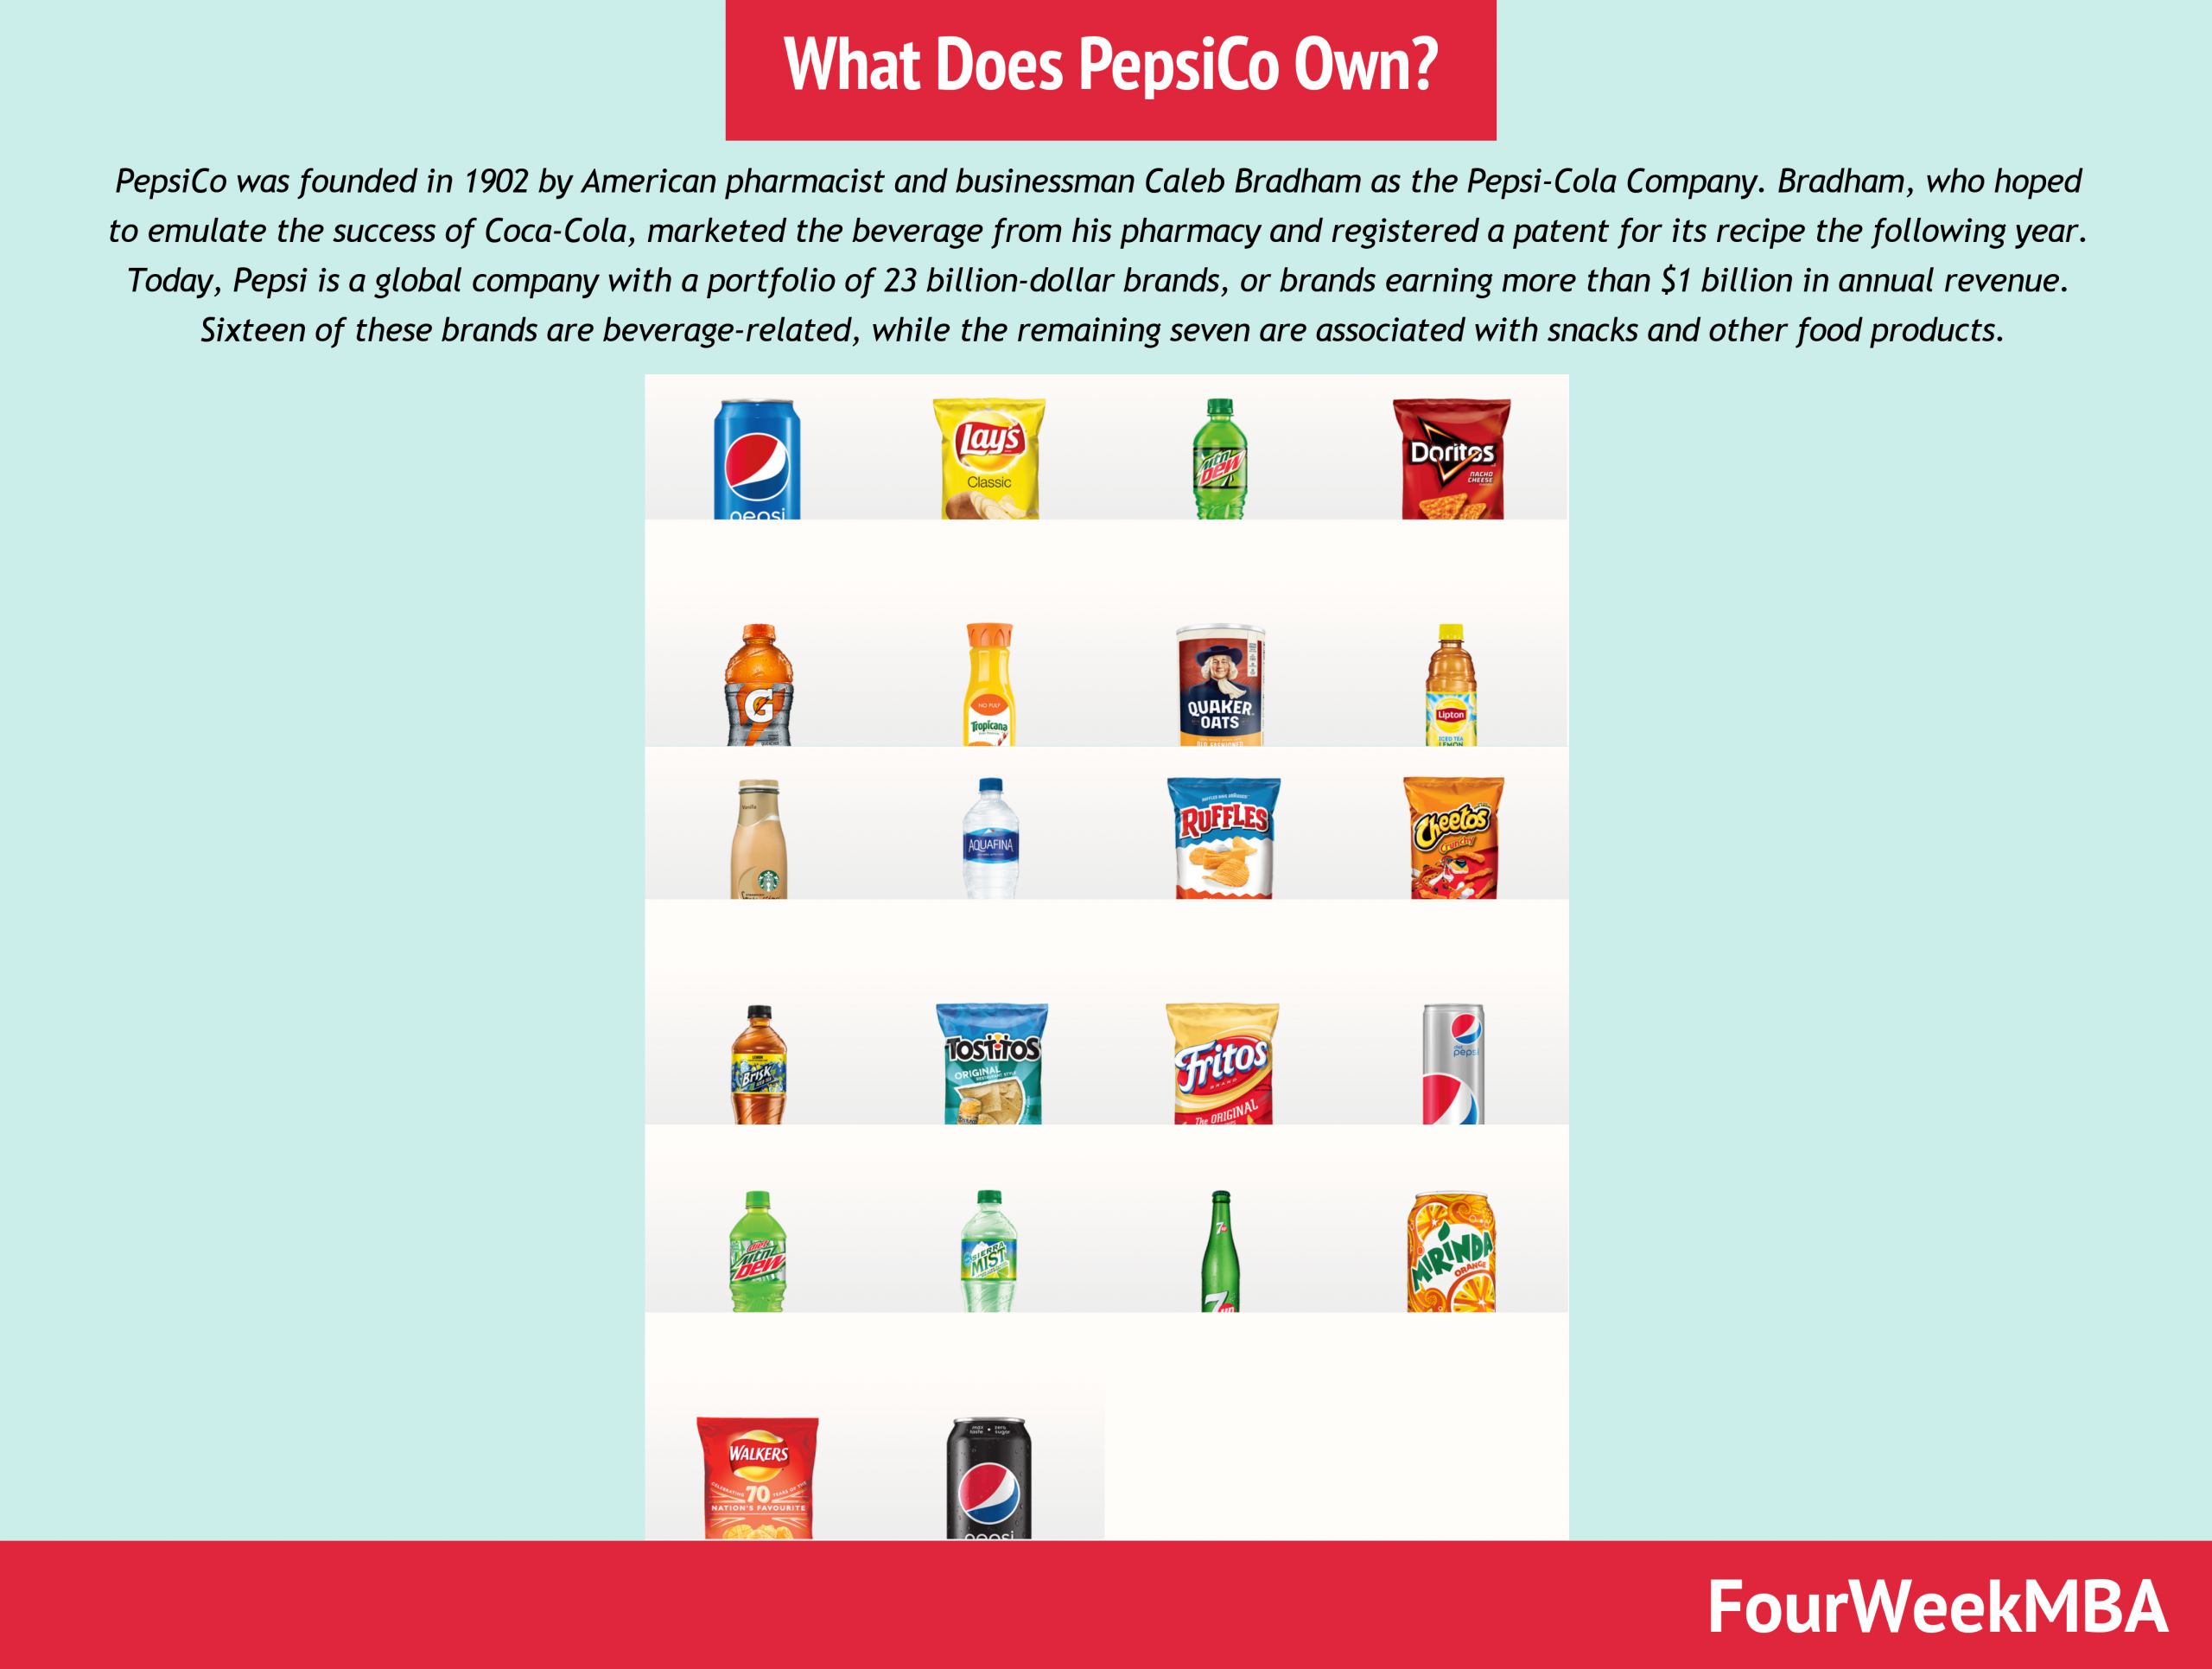 What Does PepsiCo Own? PepsiCo Companies In A Nutshell